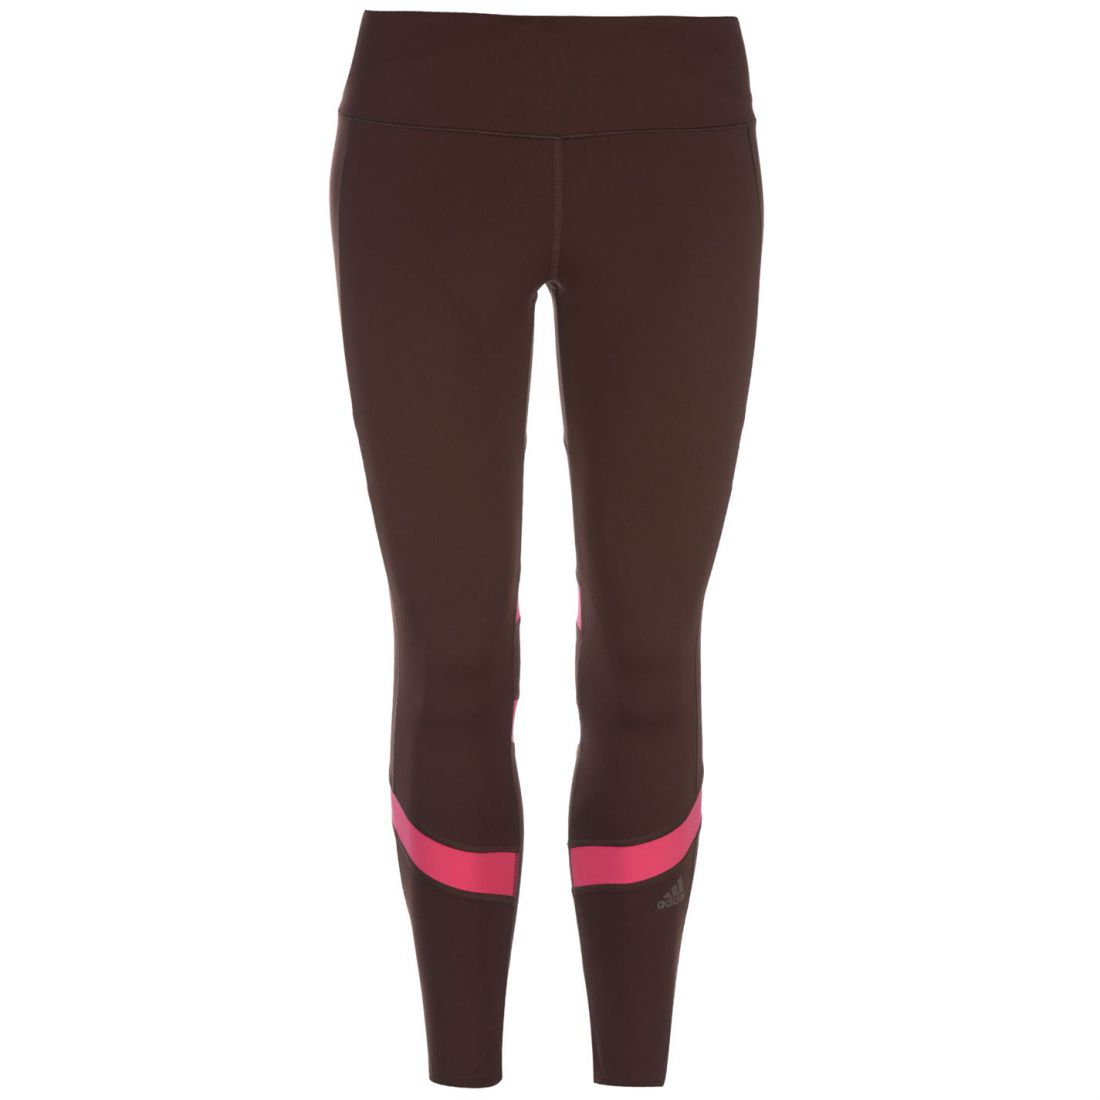 c3d087e209bc67 adidas Womens Workout Tights Performance Pants Trousers Bottoms Zip ...